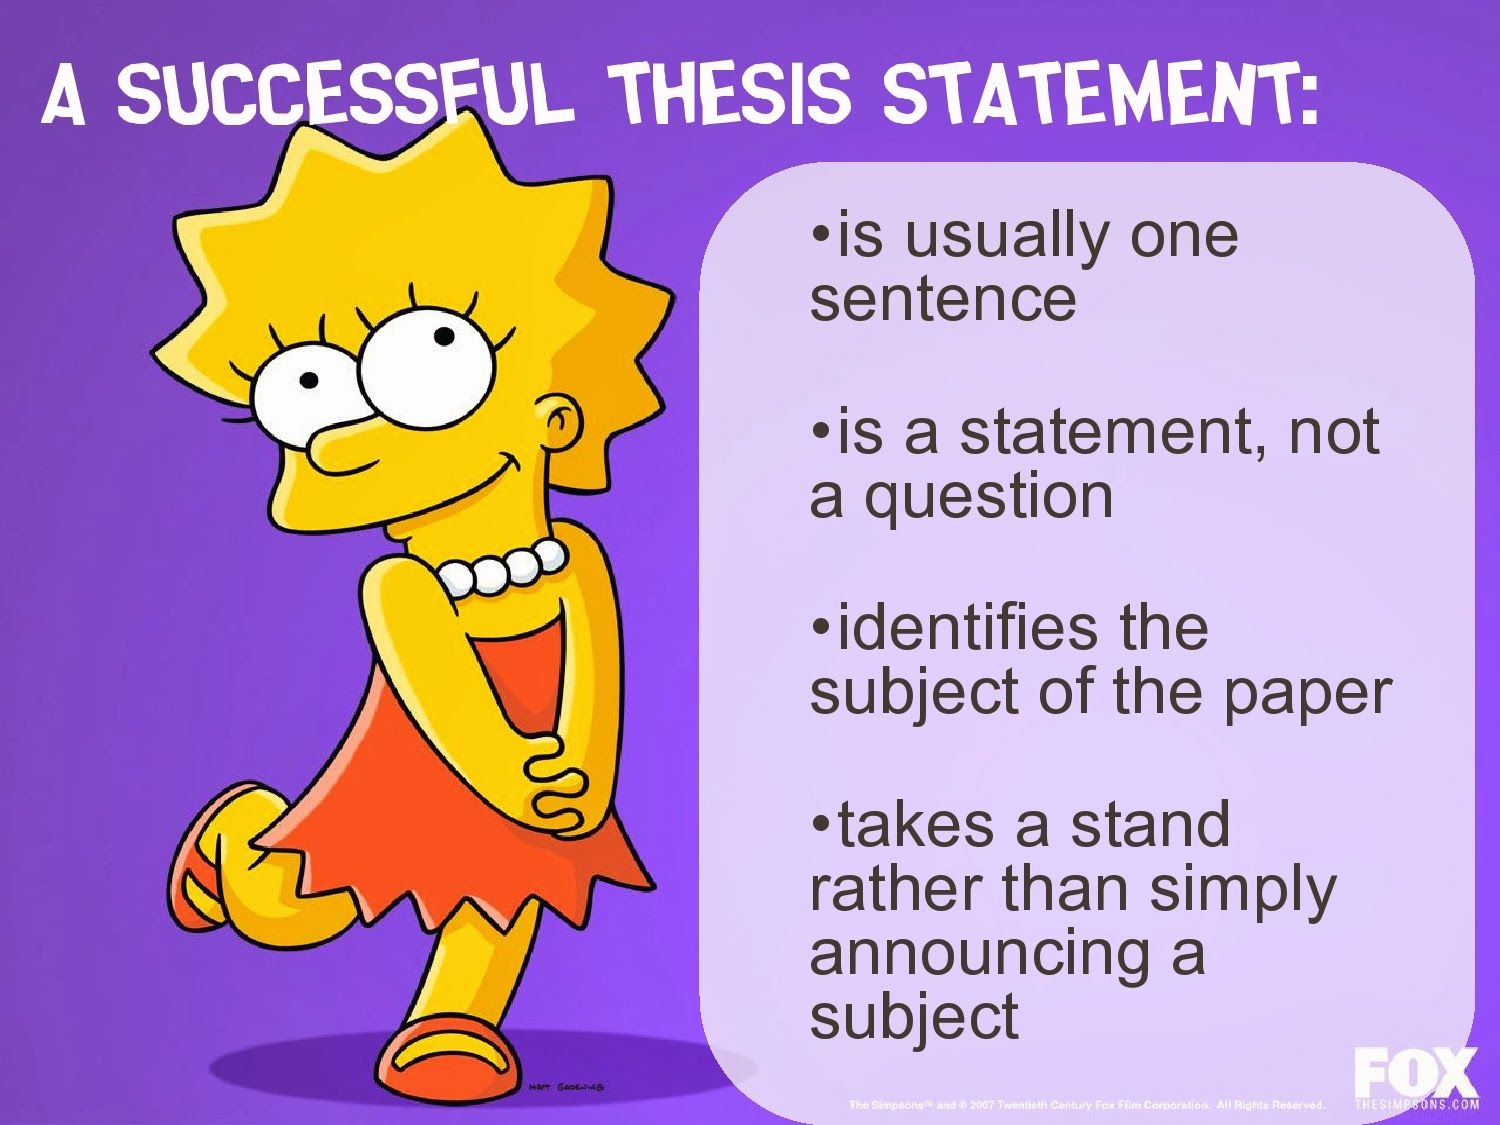 Get Examples of Good Thesis Statements That Make Your Essay Stand Out